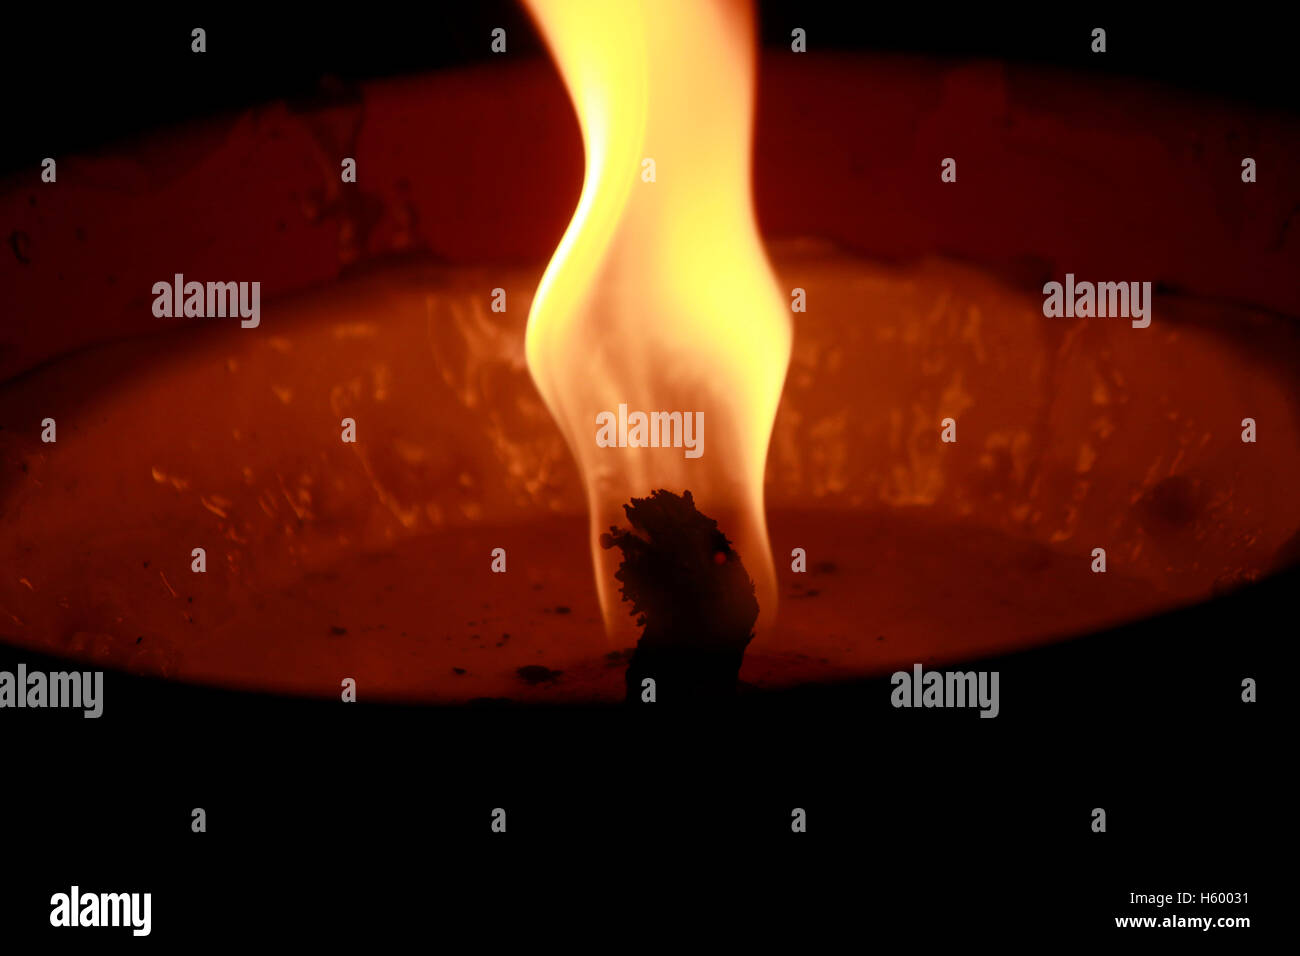 light fire - Stock Image